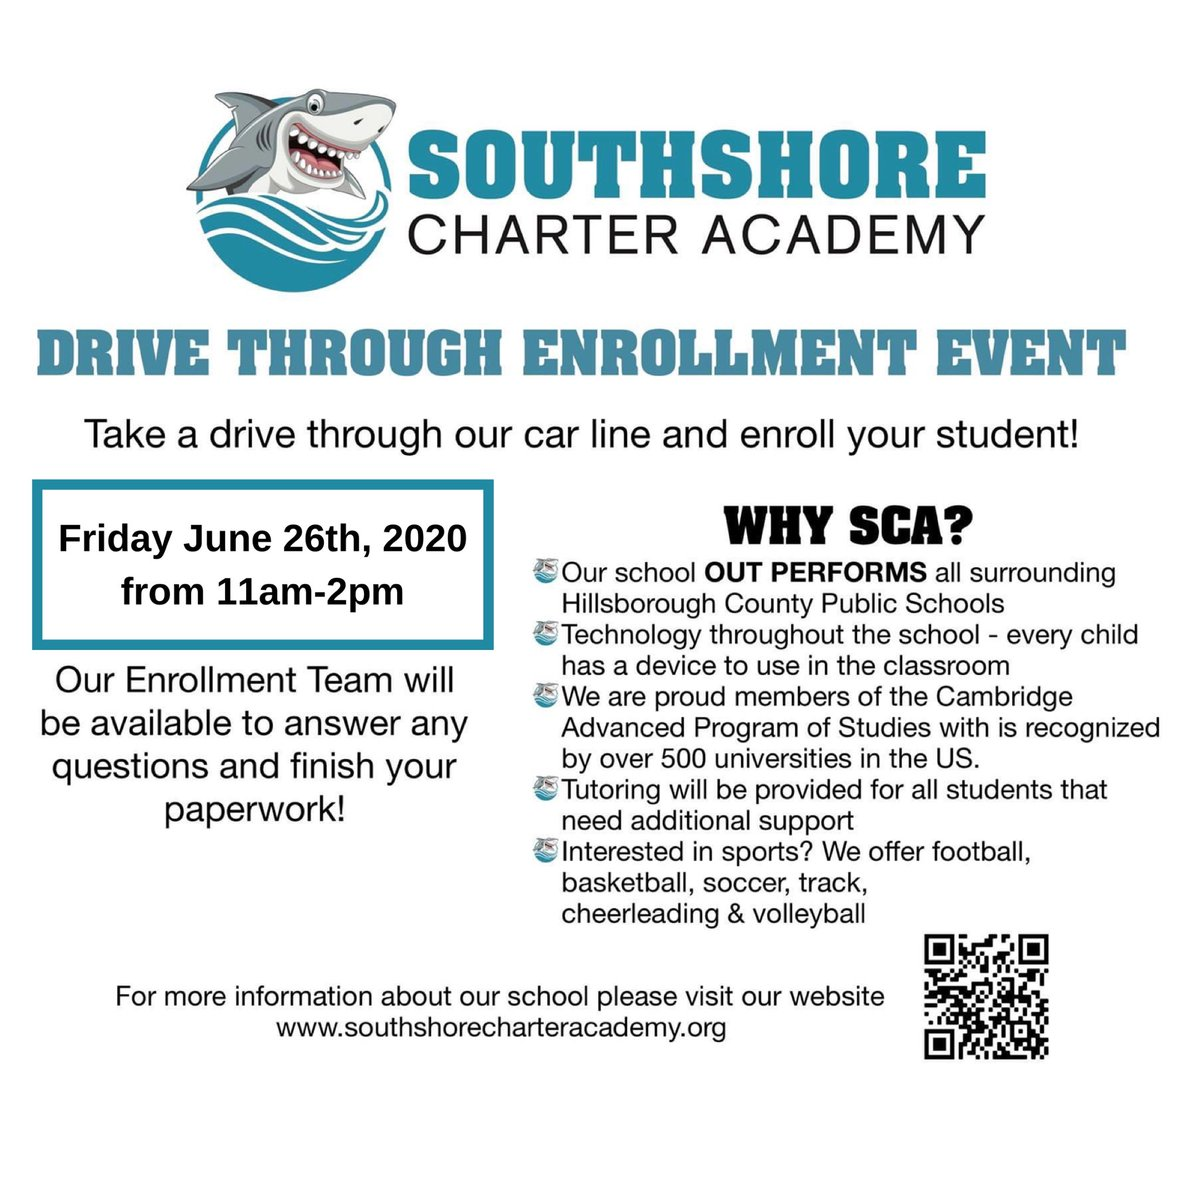 Southshore Charter Academy Scasharks Twitter